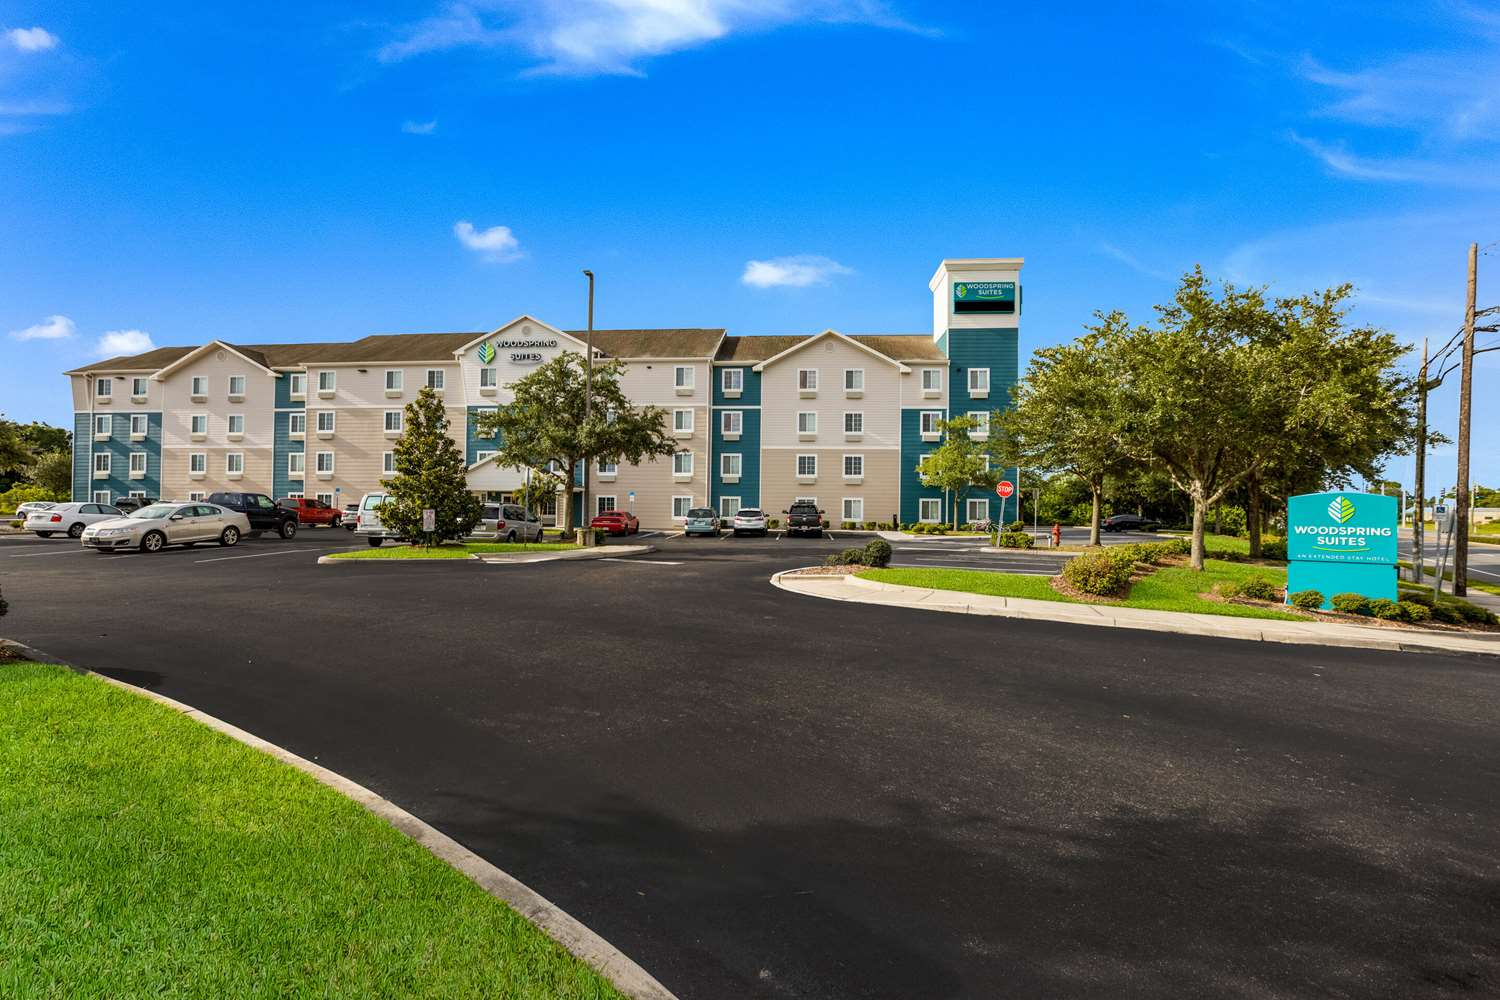 Value Place Hotel Sanford